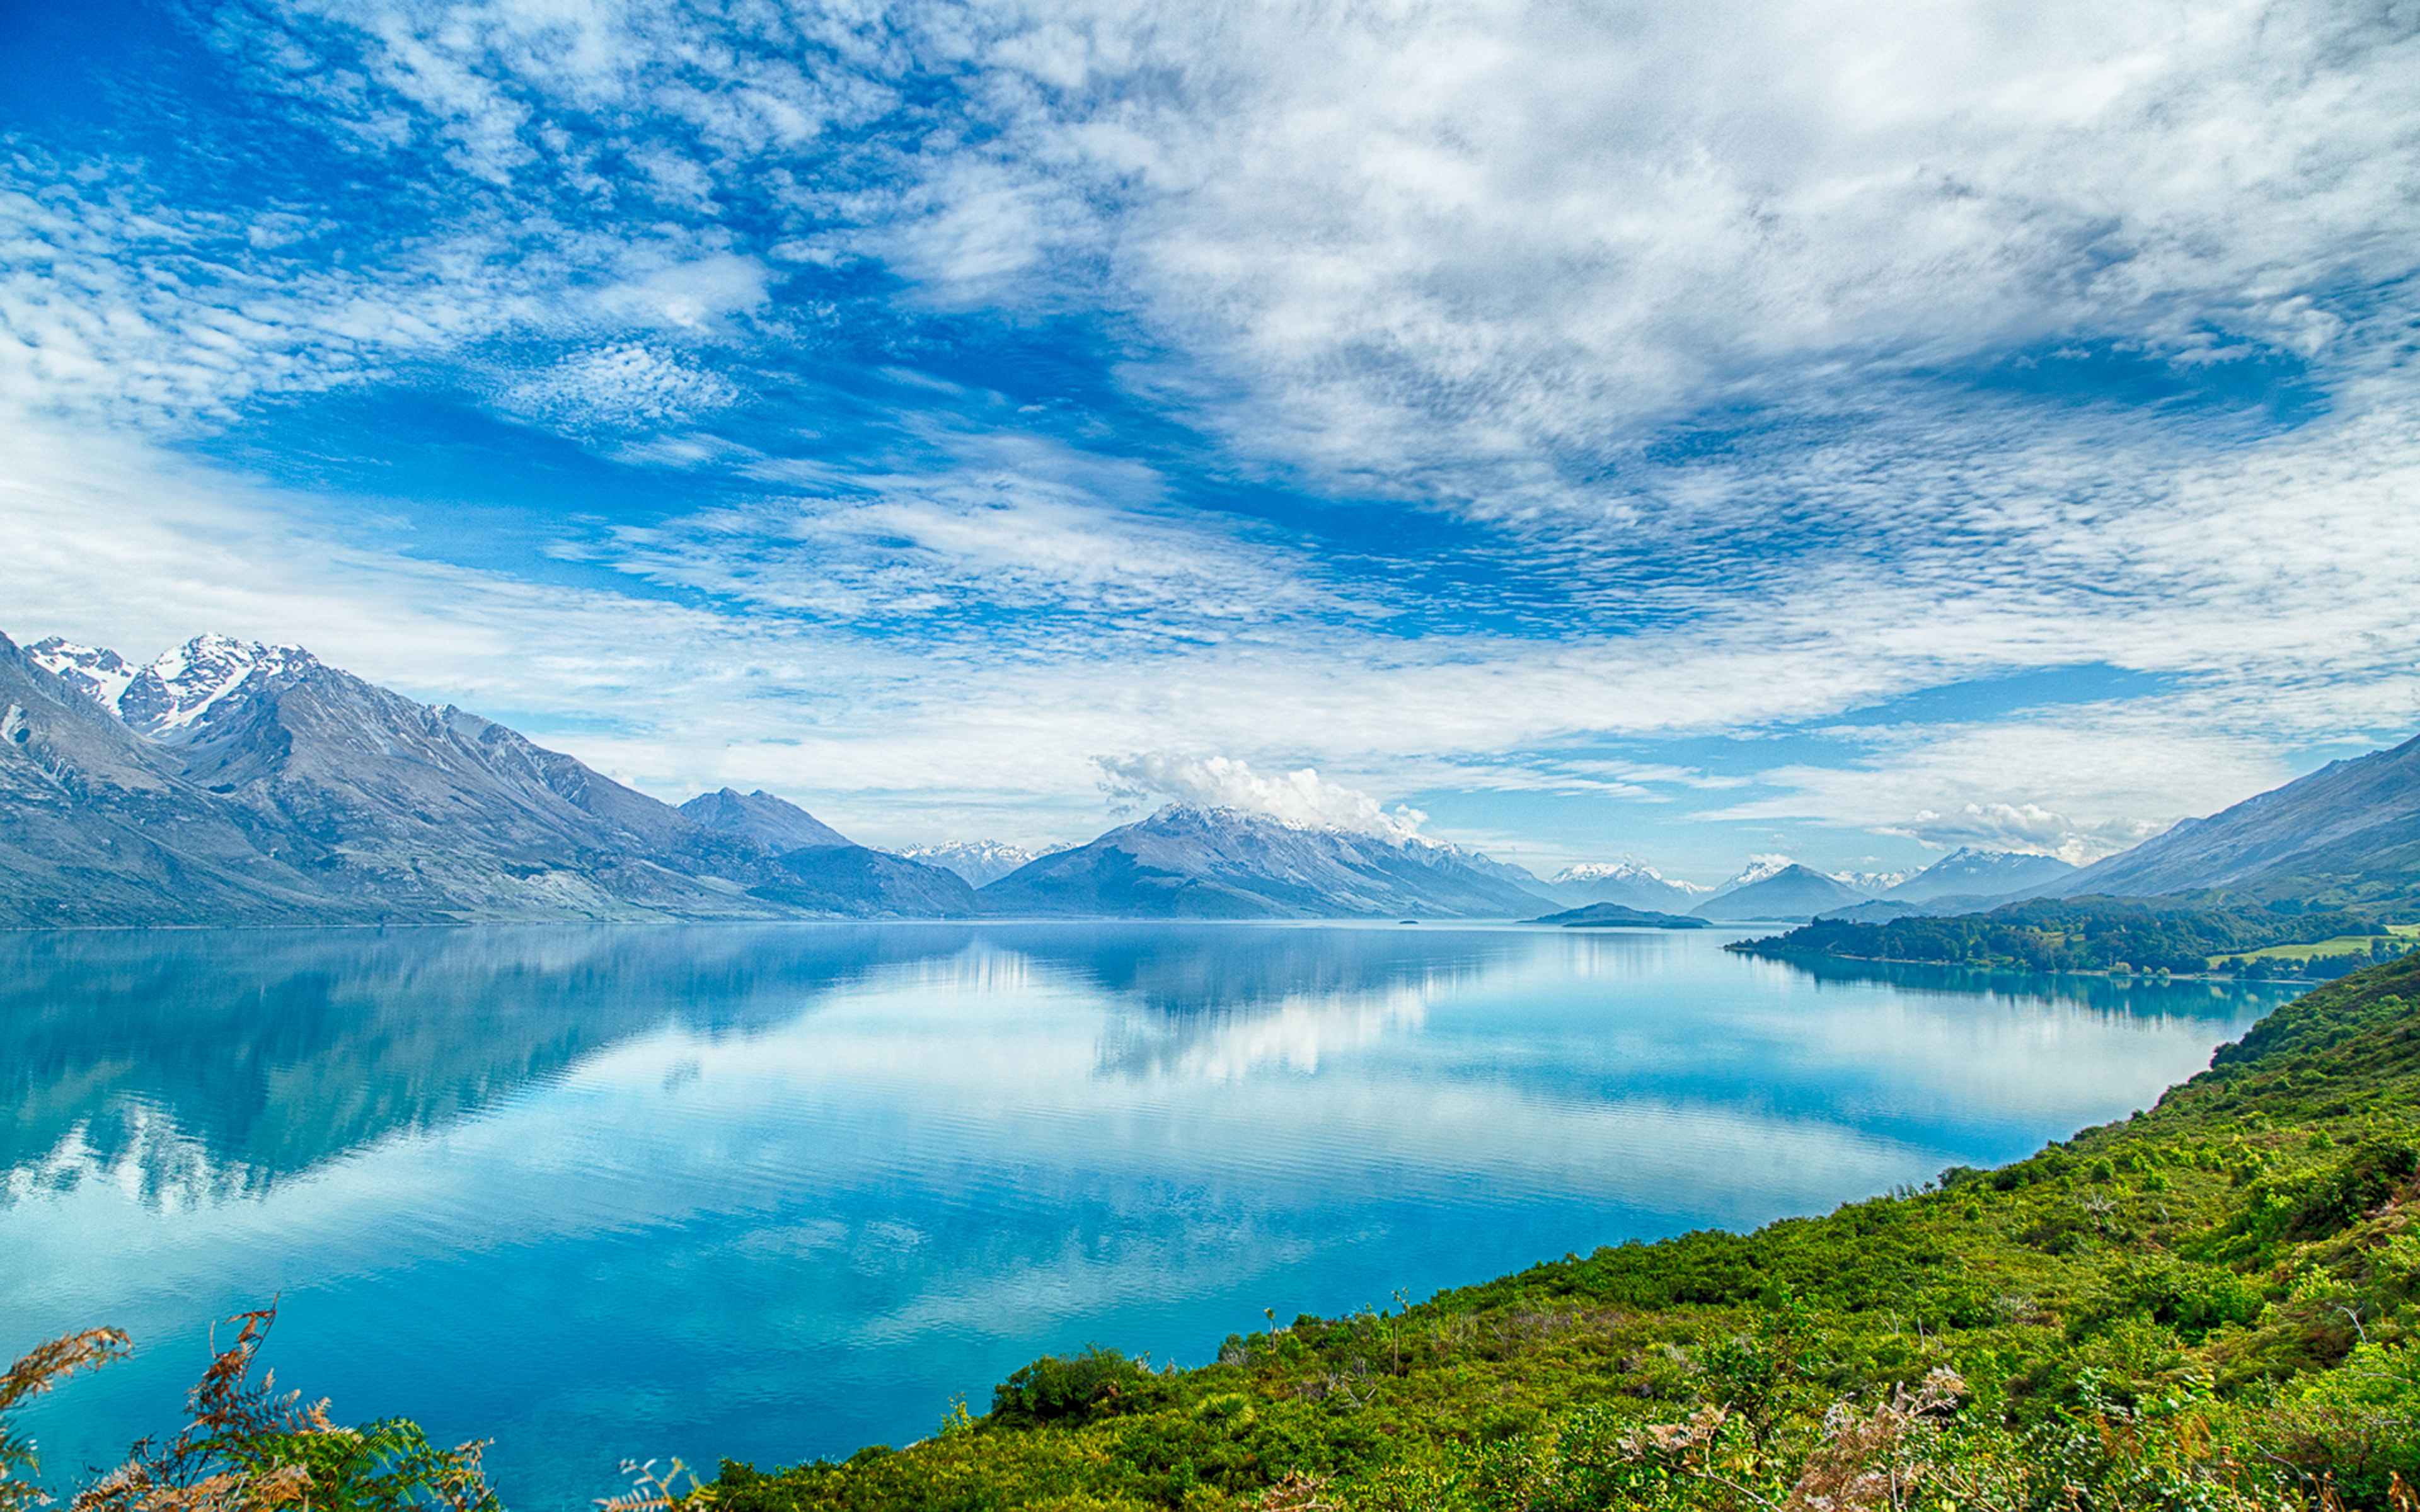 Dota 2 Wallpaper Hd For Pc New Zealand Lake Pukaki Heavenly Blue Water Blue Sky And